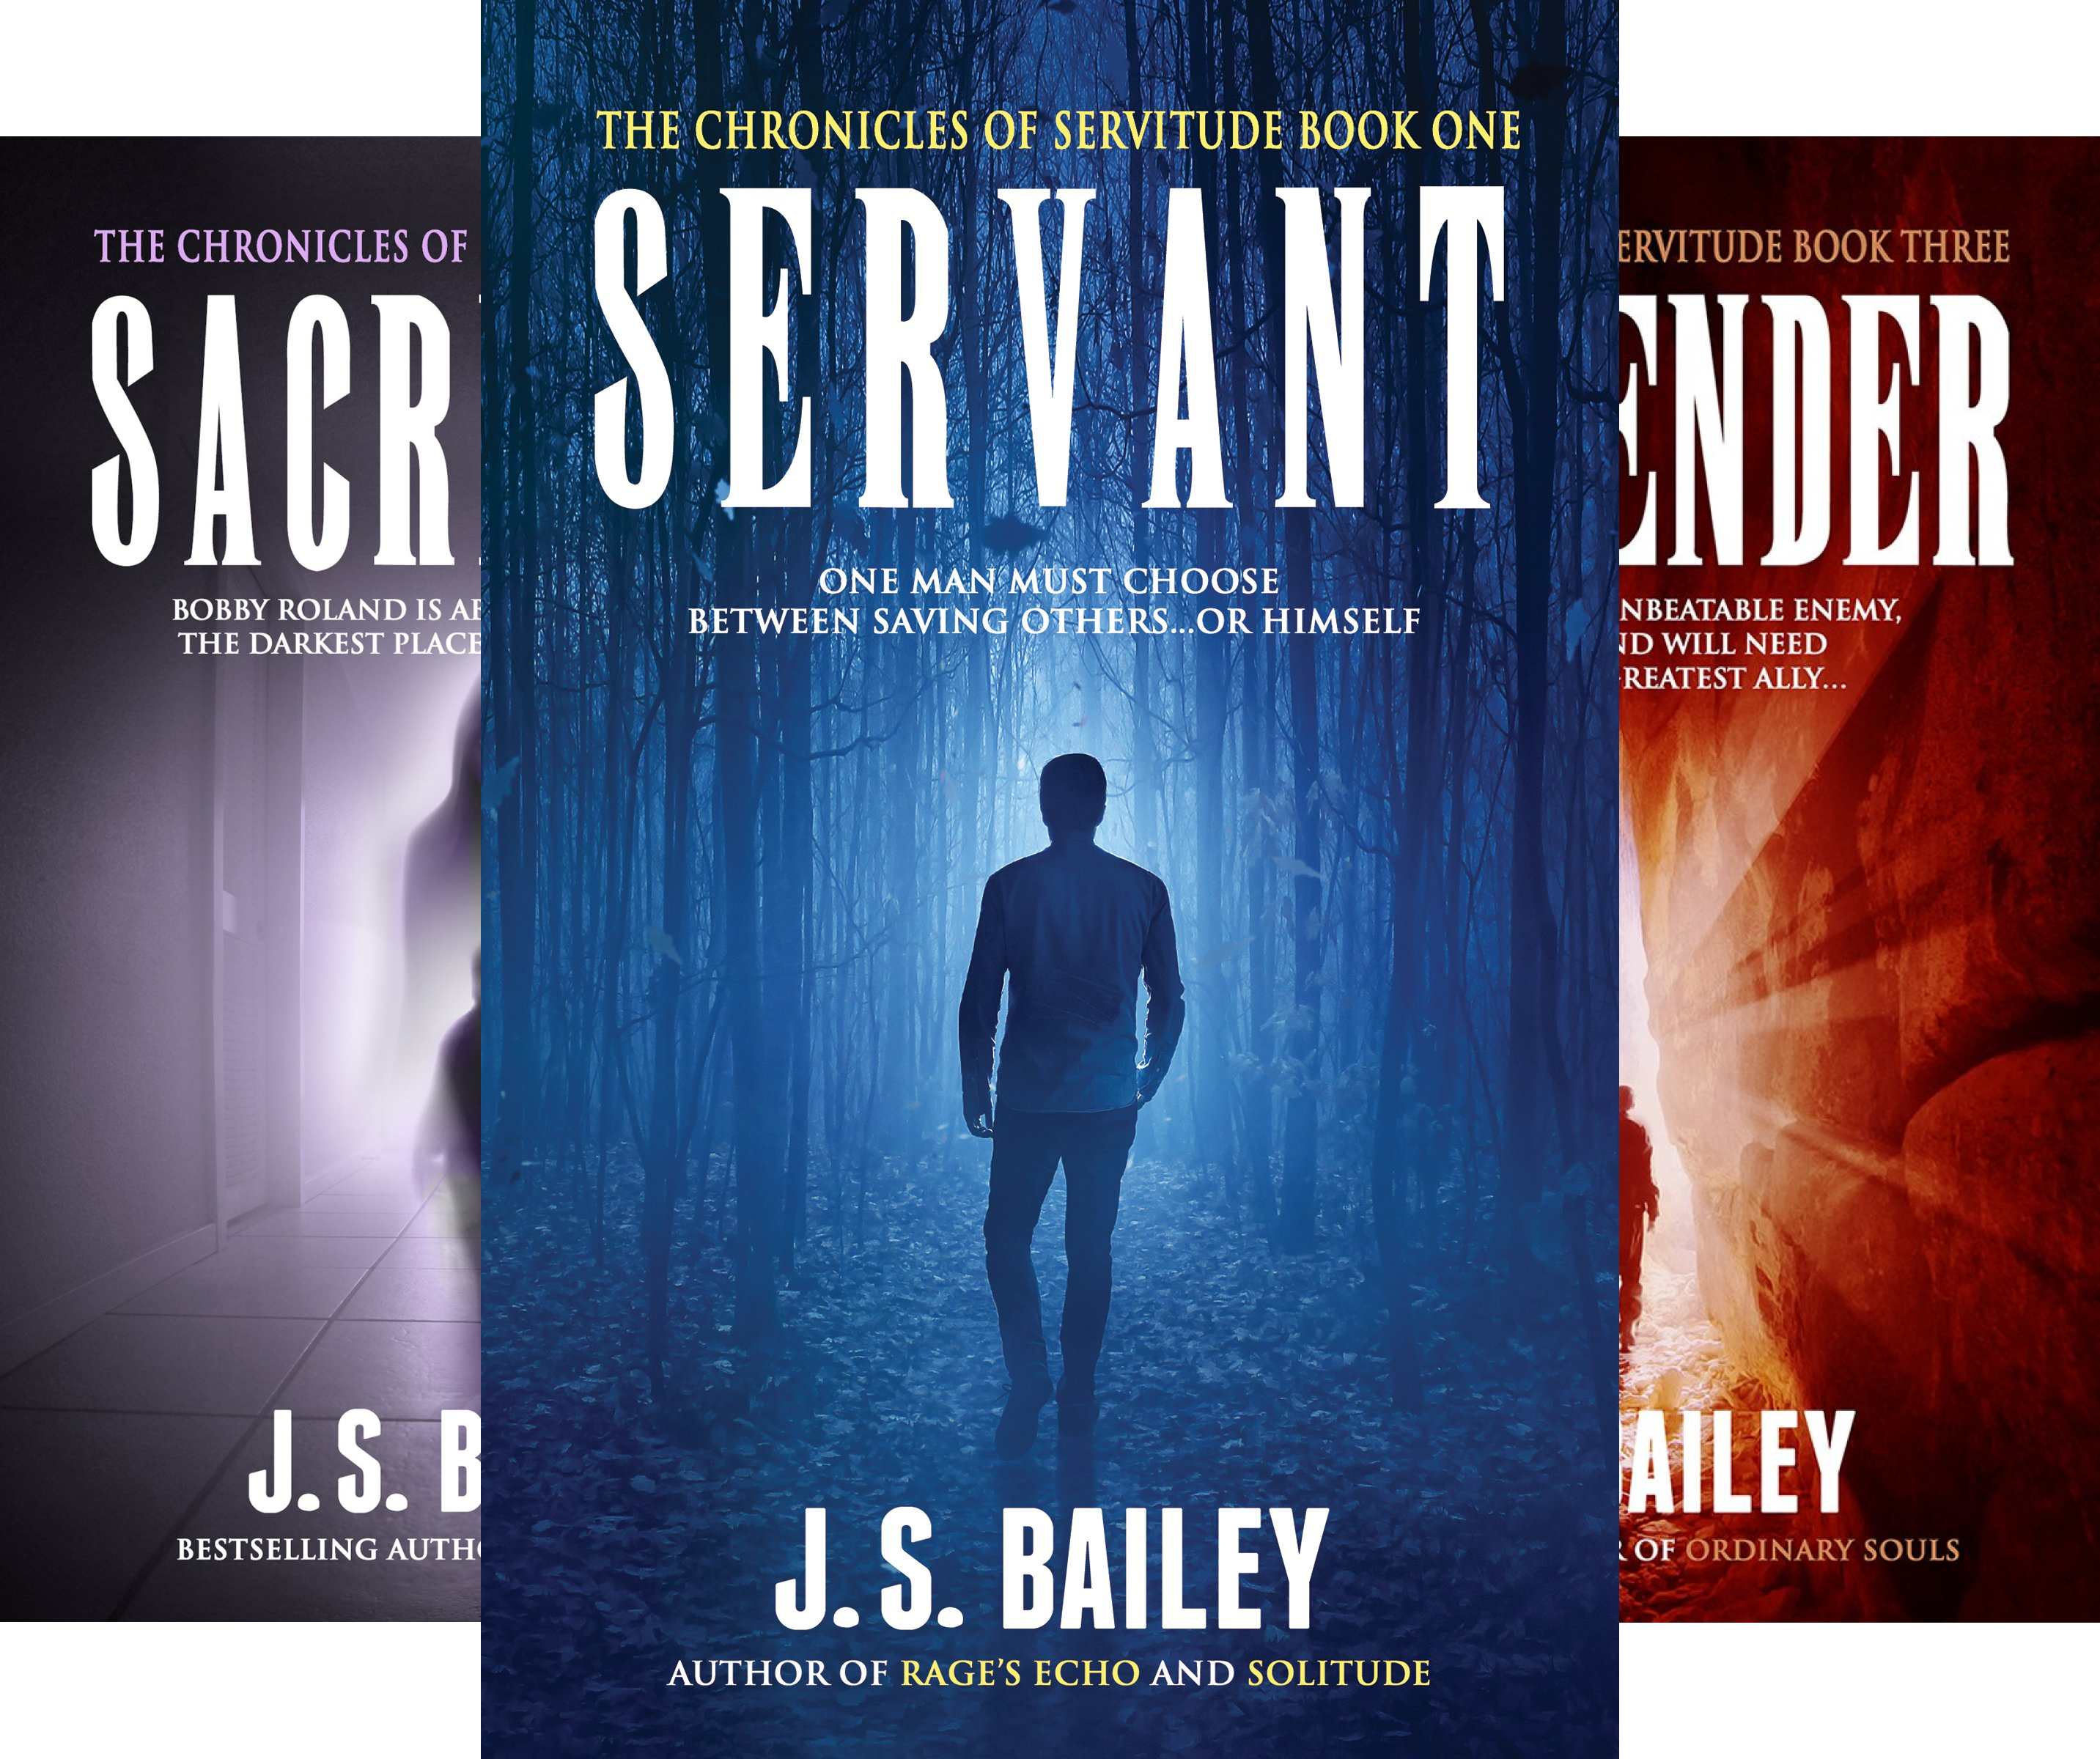 The Chronicles of Servitude (3 Book Series)